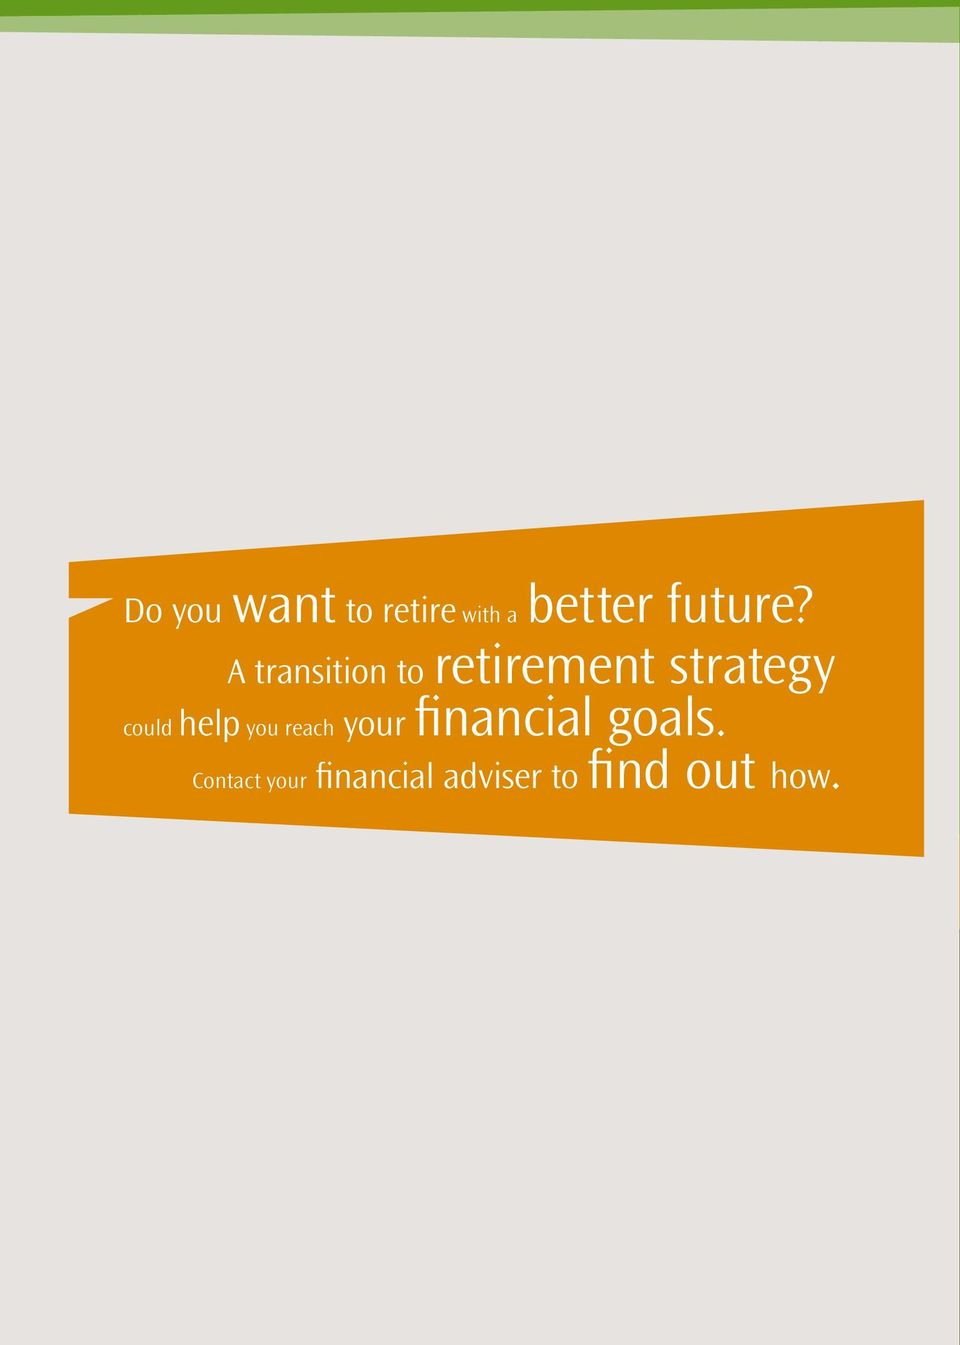 A transition to retirement strategy could